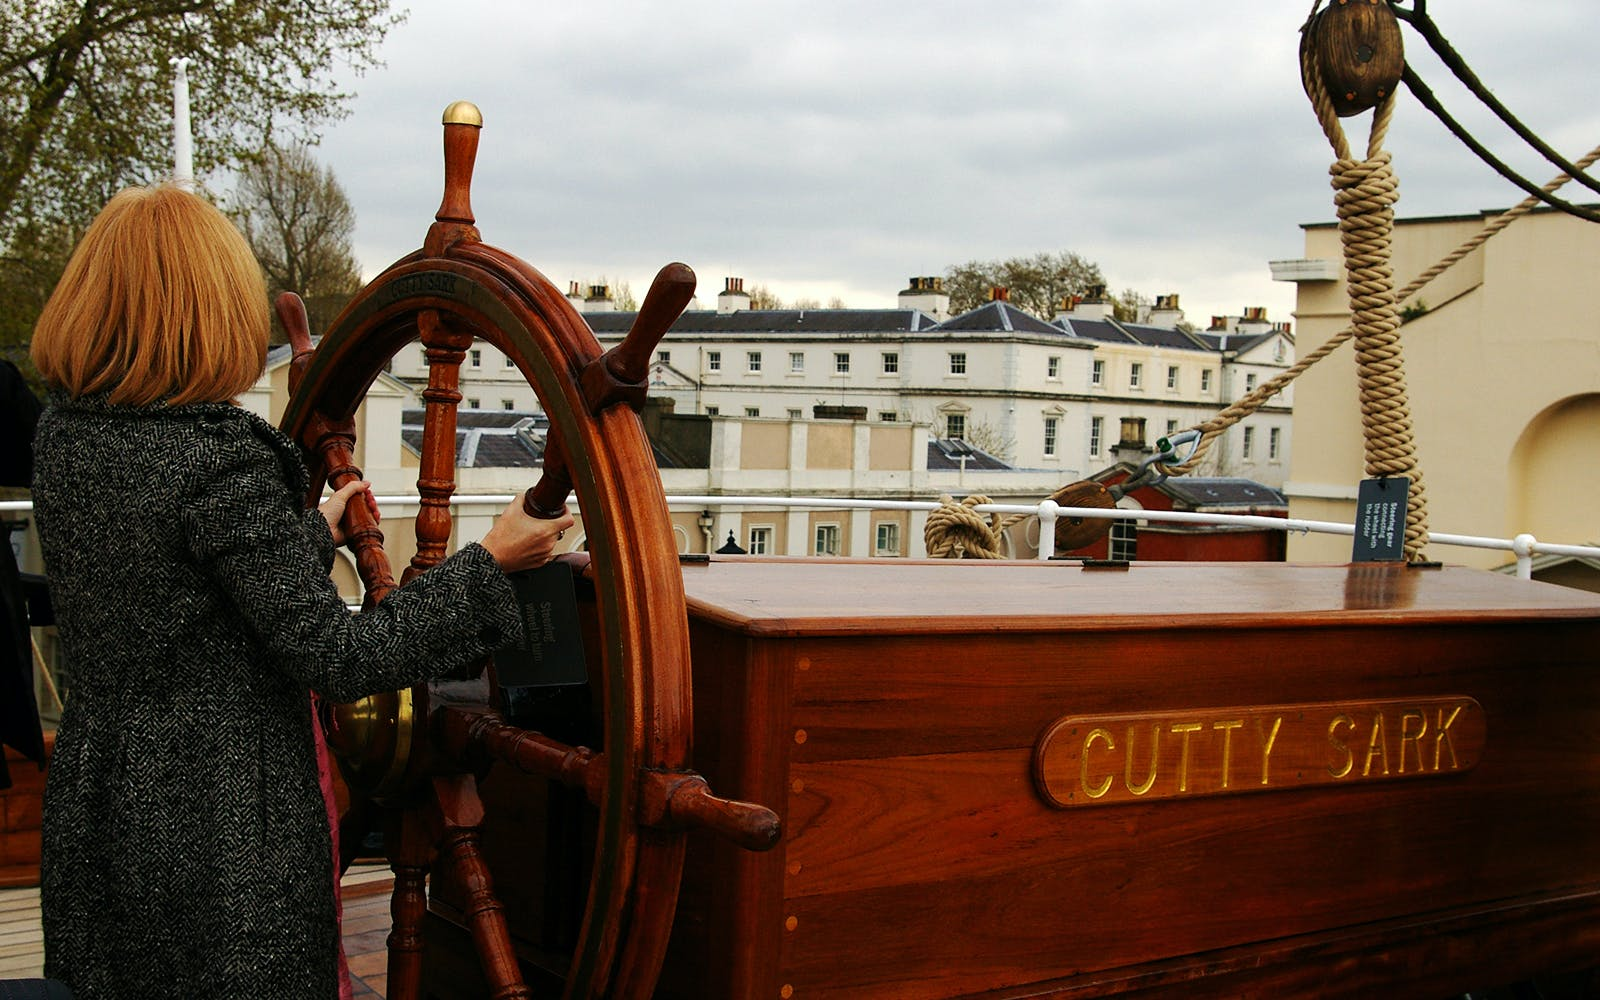 thames cruise and cutty sark ticket-3